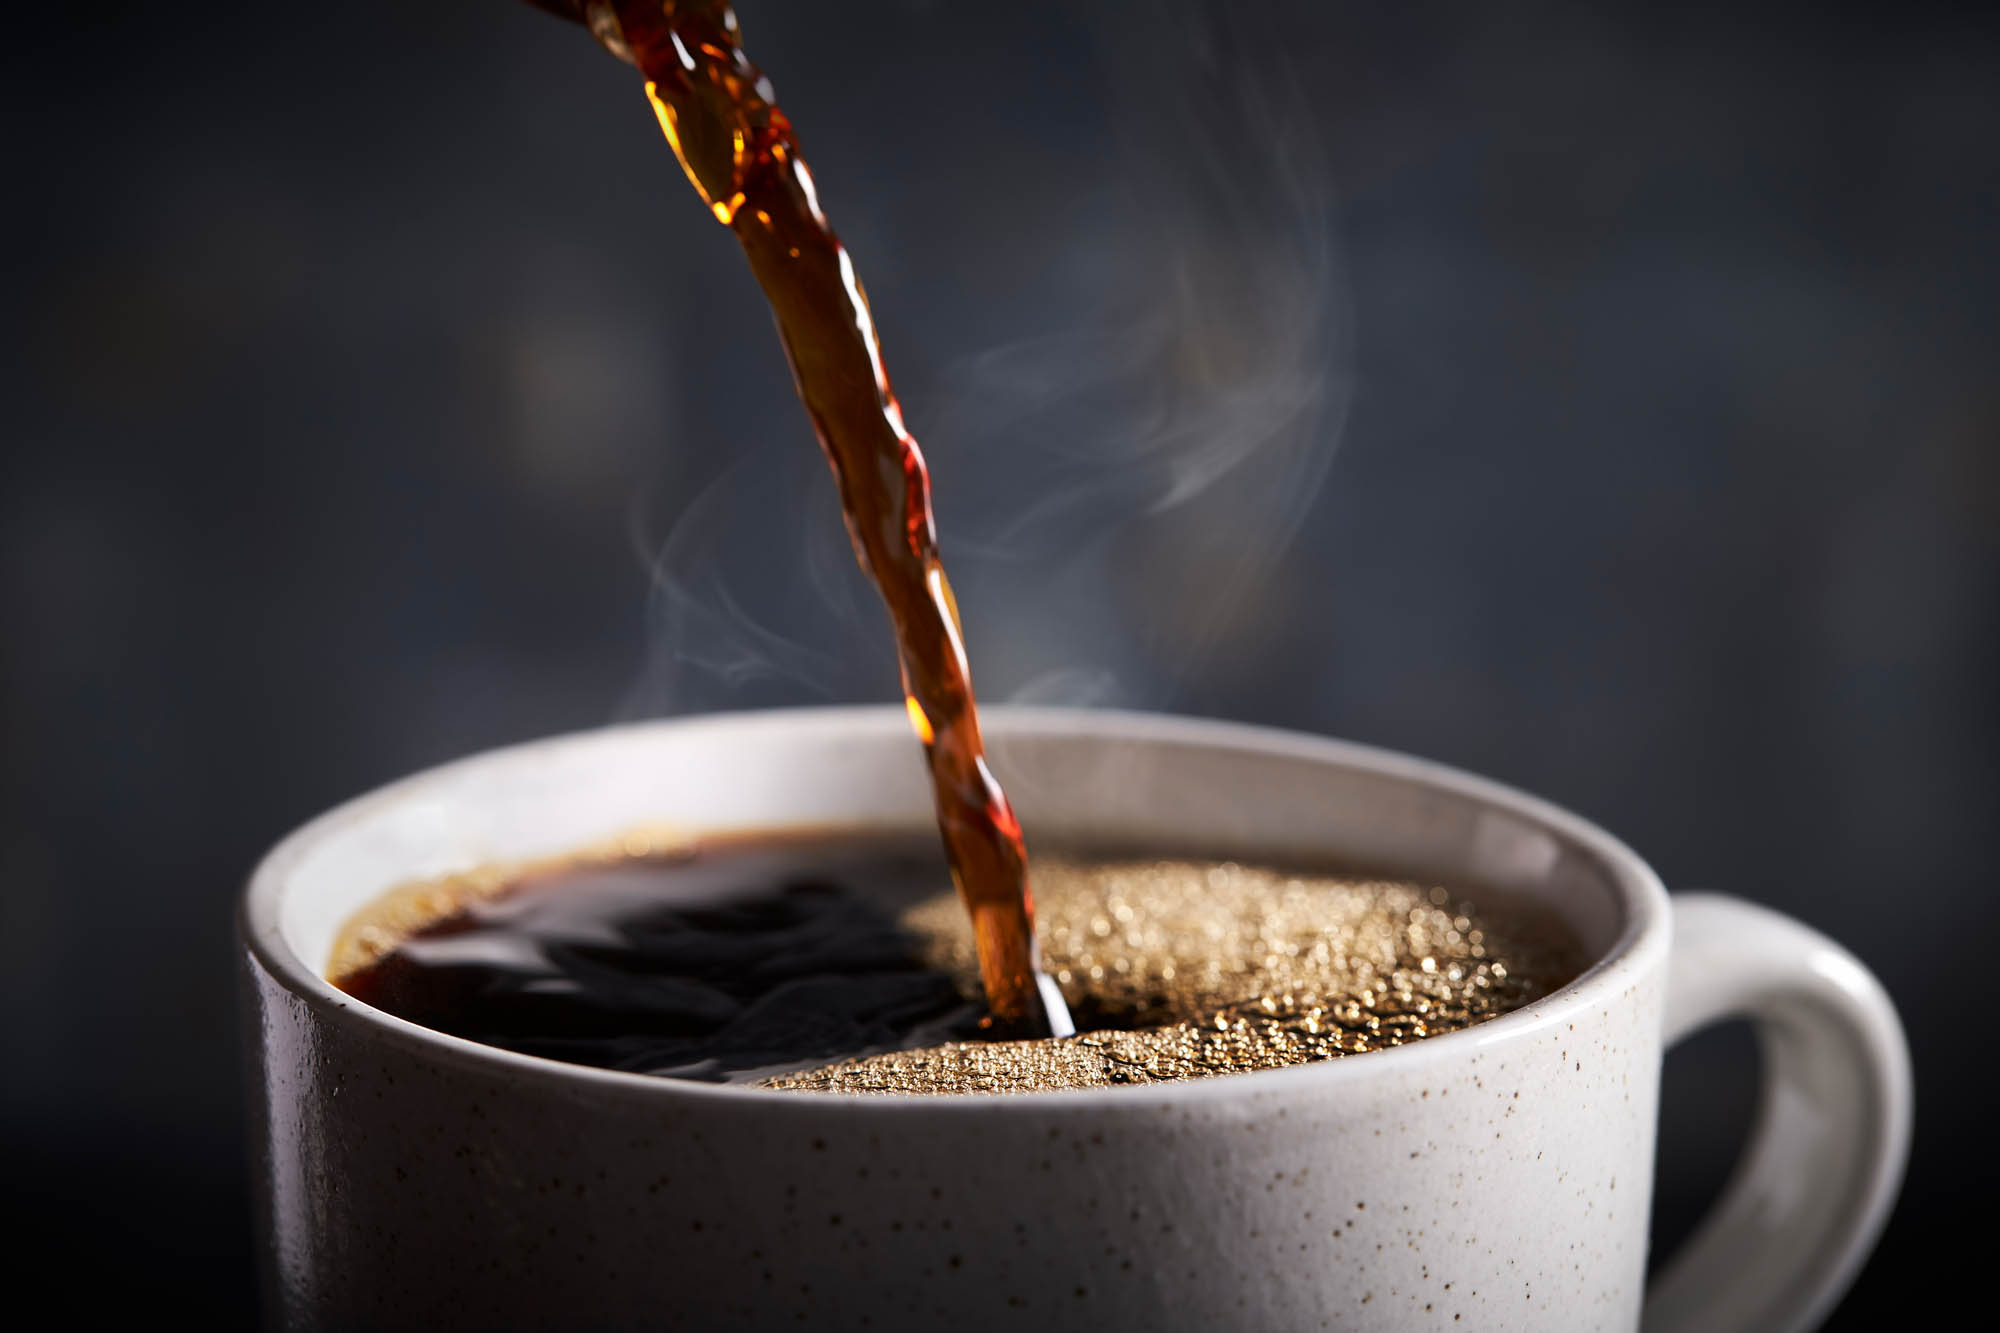 Pouring hot coffee in a mug